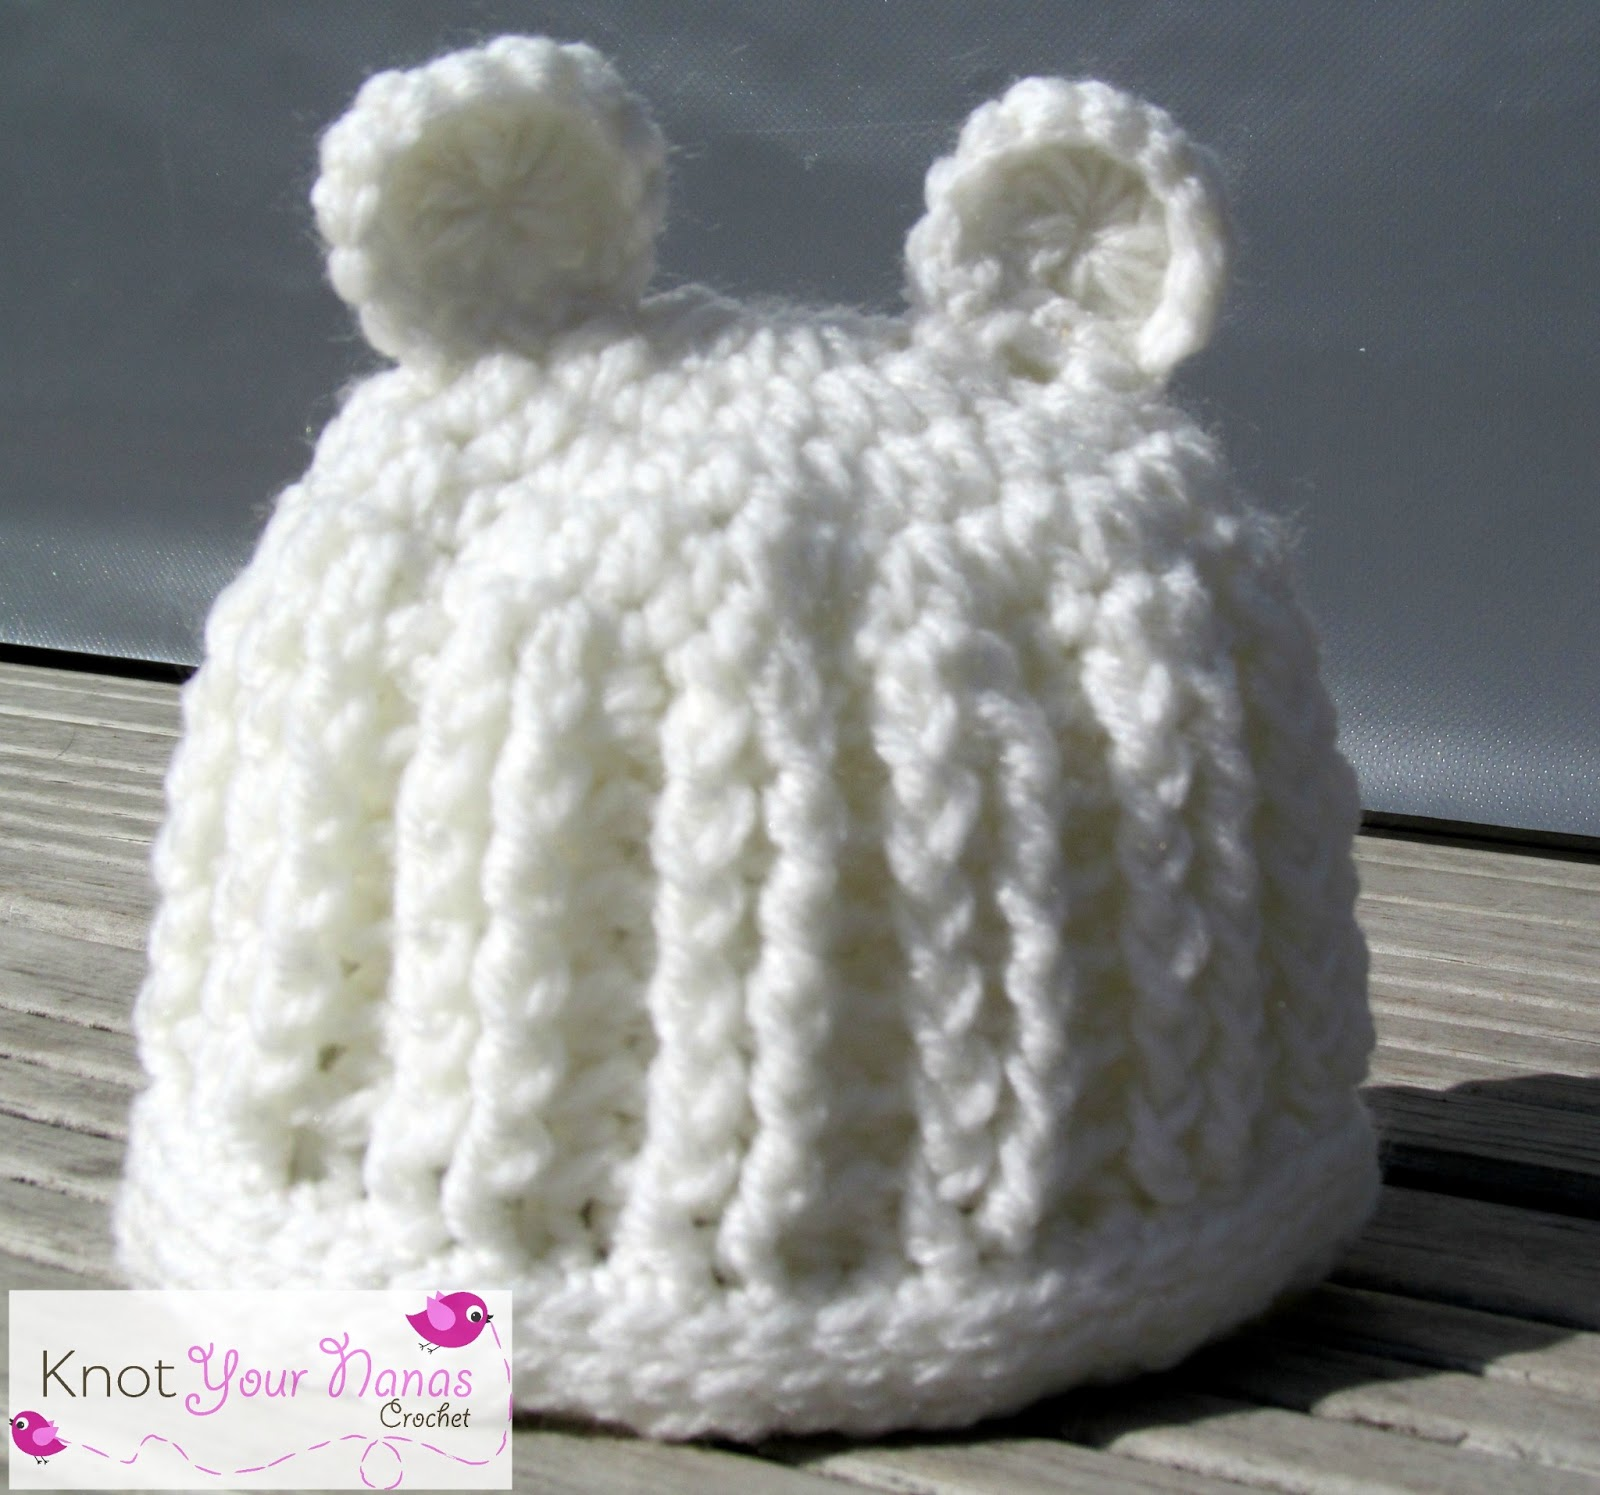 Crochet Pattern For Baby Hat With Ears : Knot Your Nanas Crochet: Baby Hat